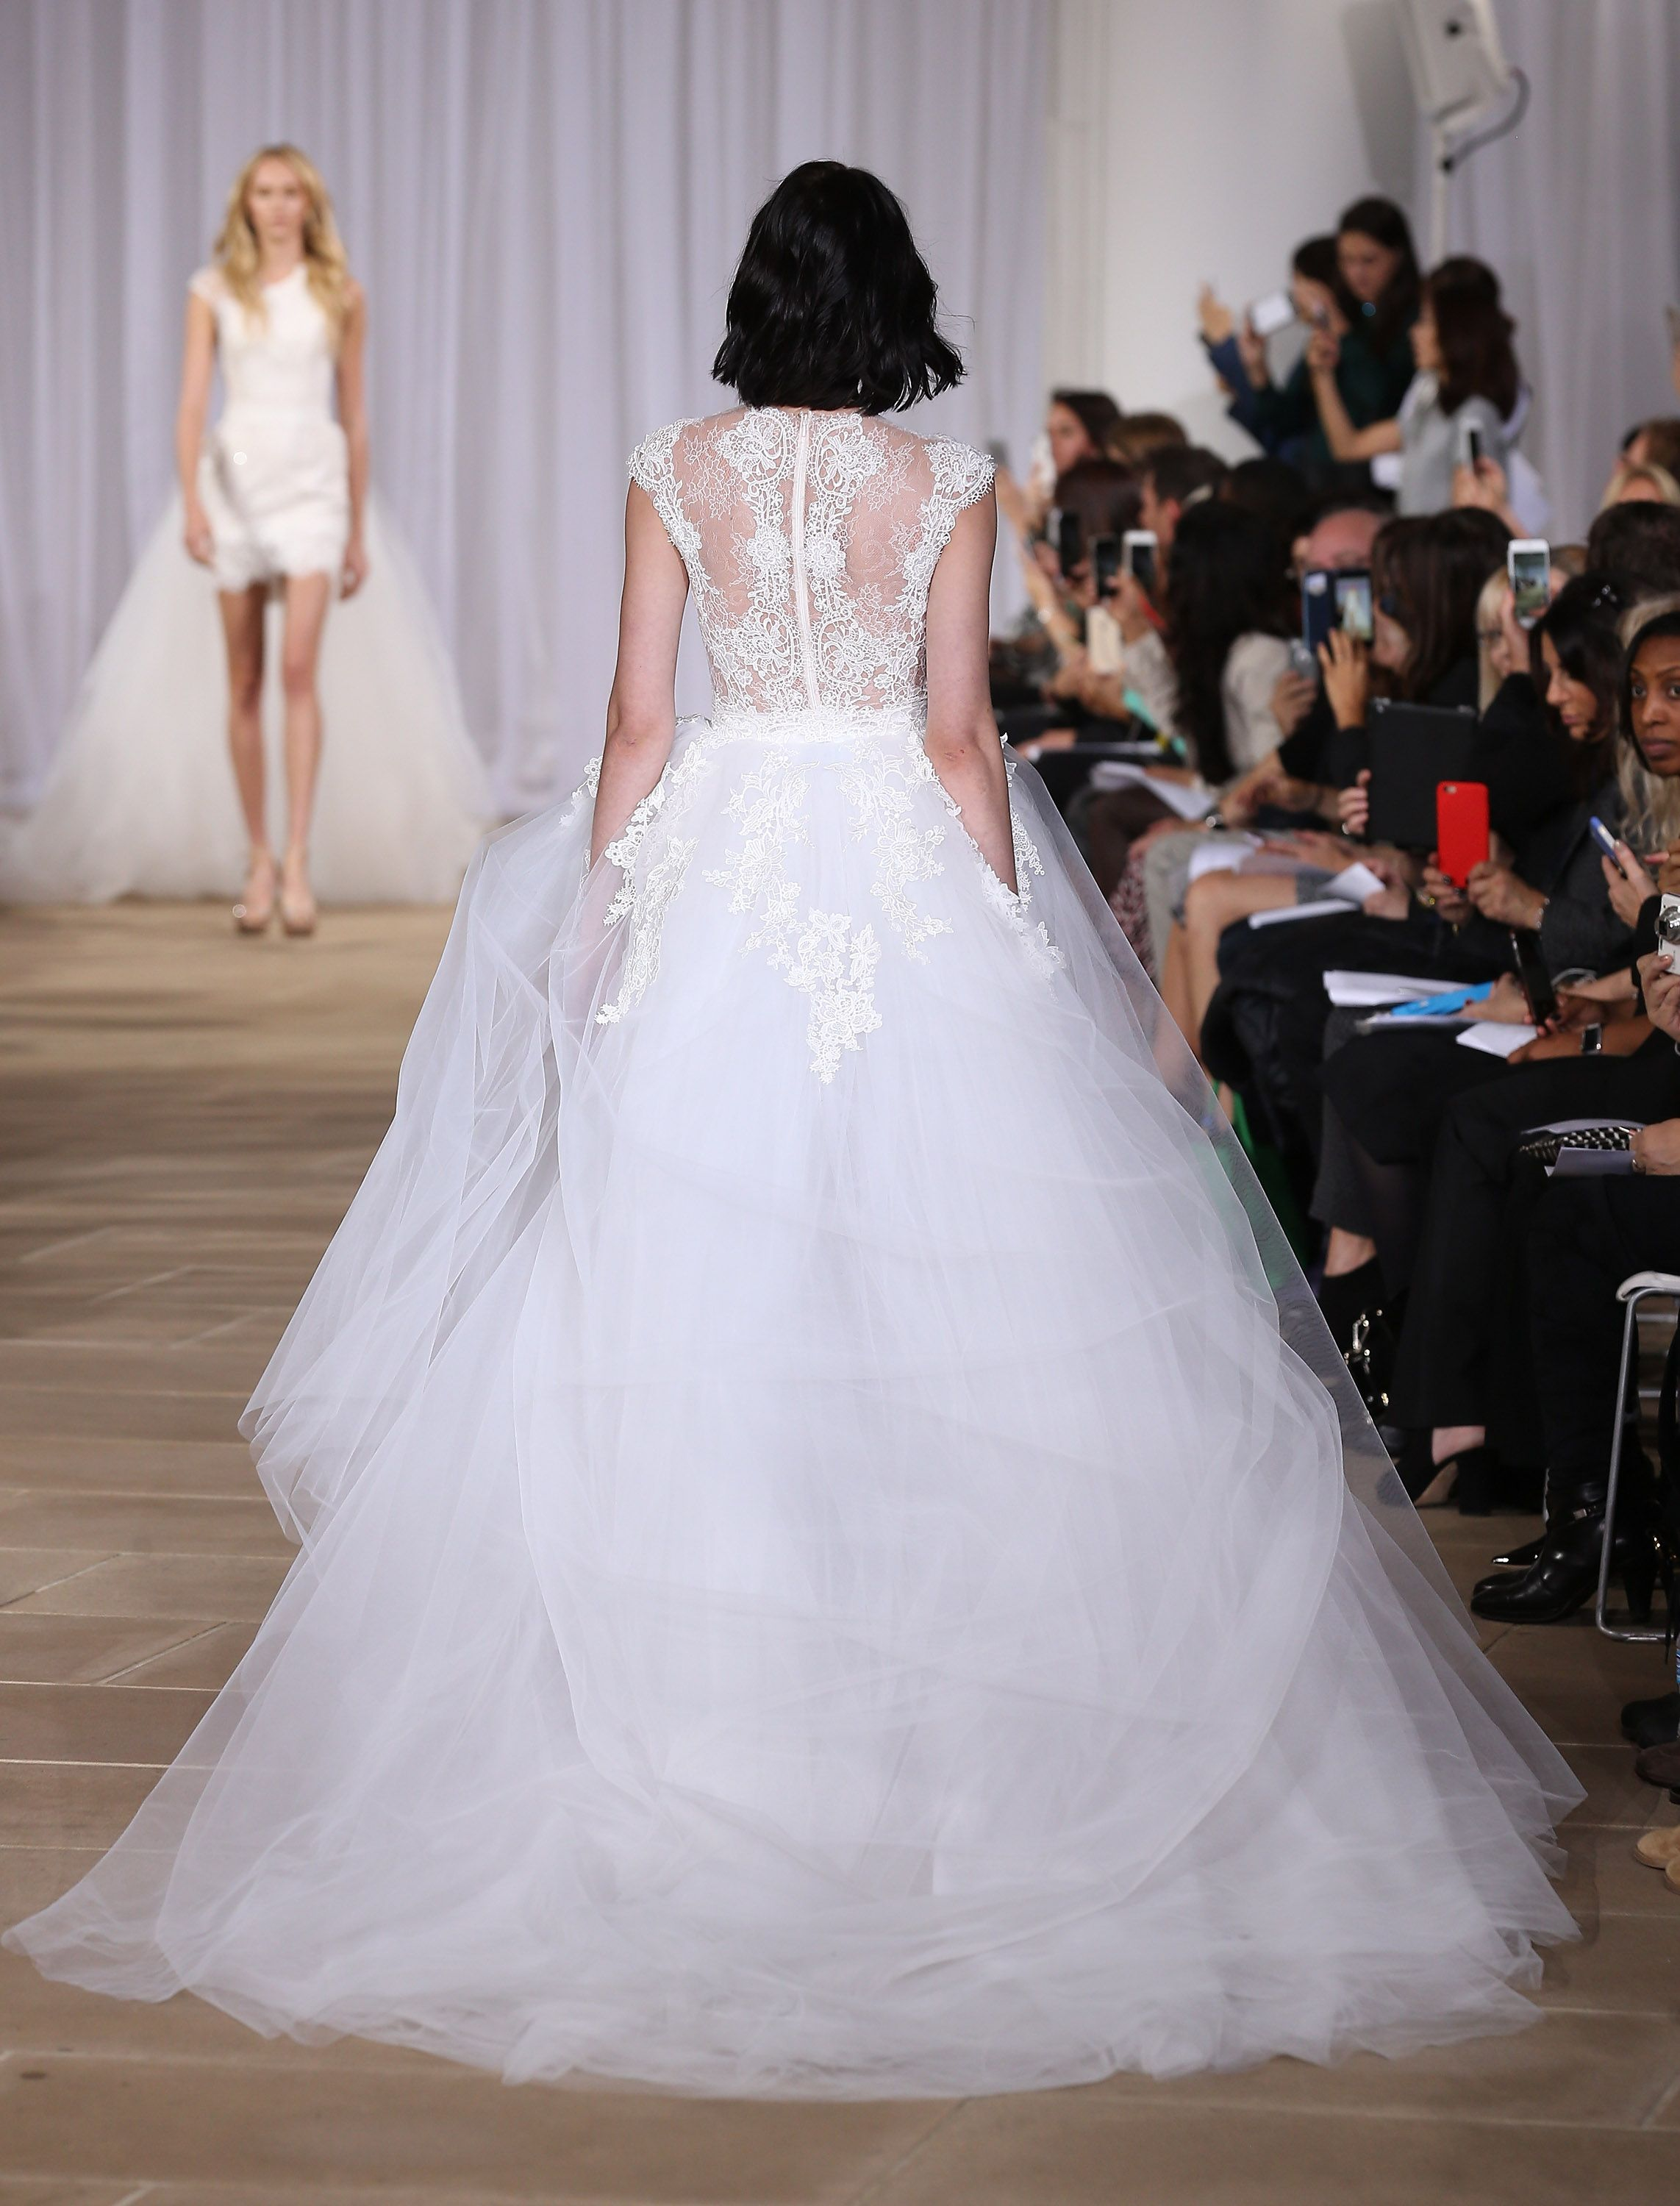 Pretty Back Details On Wedding Dresses Winter With Beautiful Backs